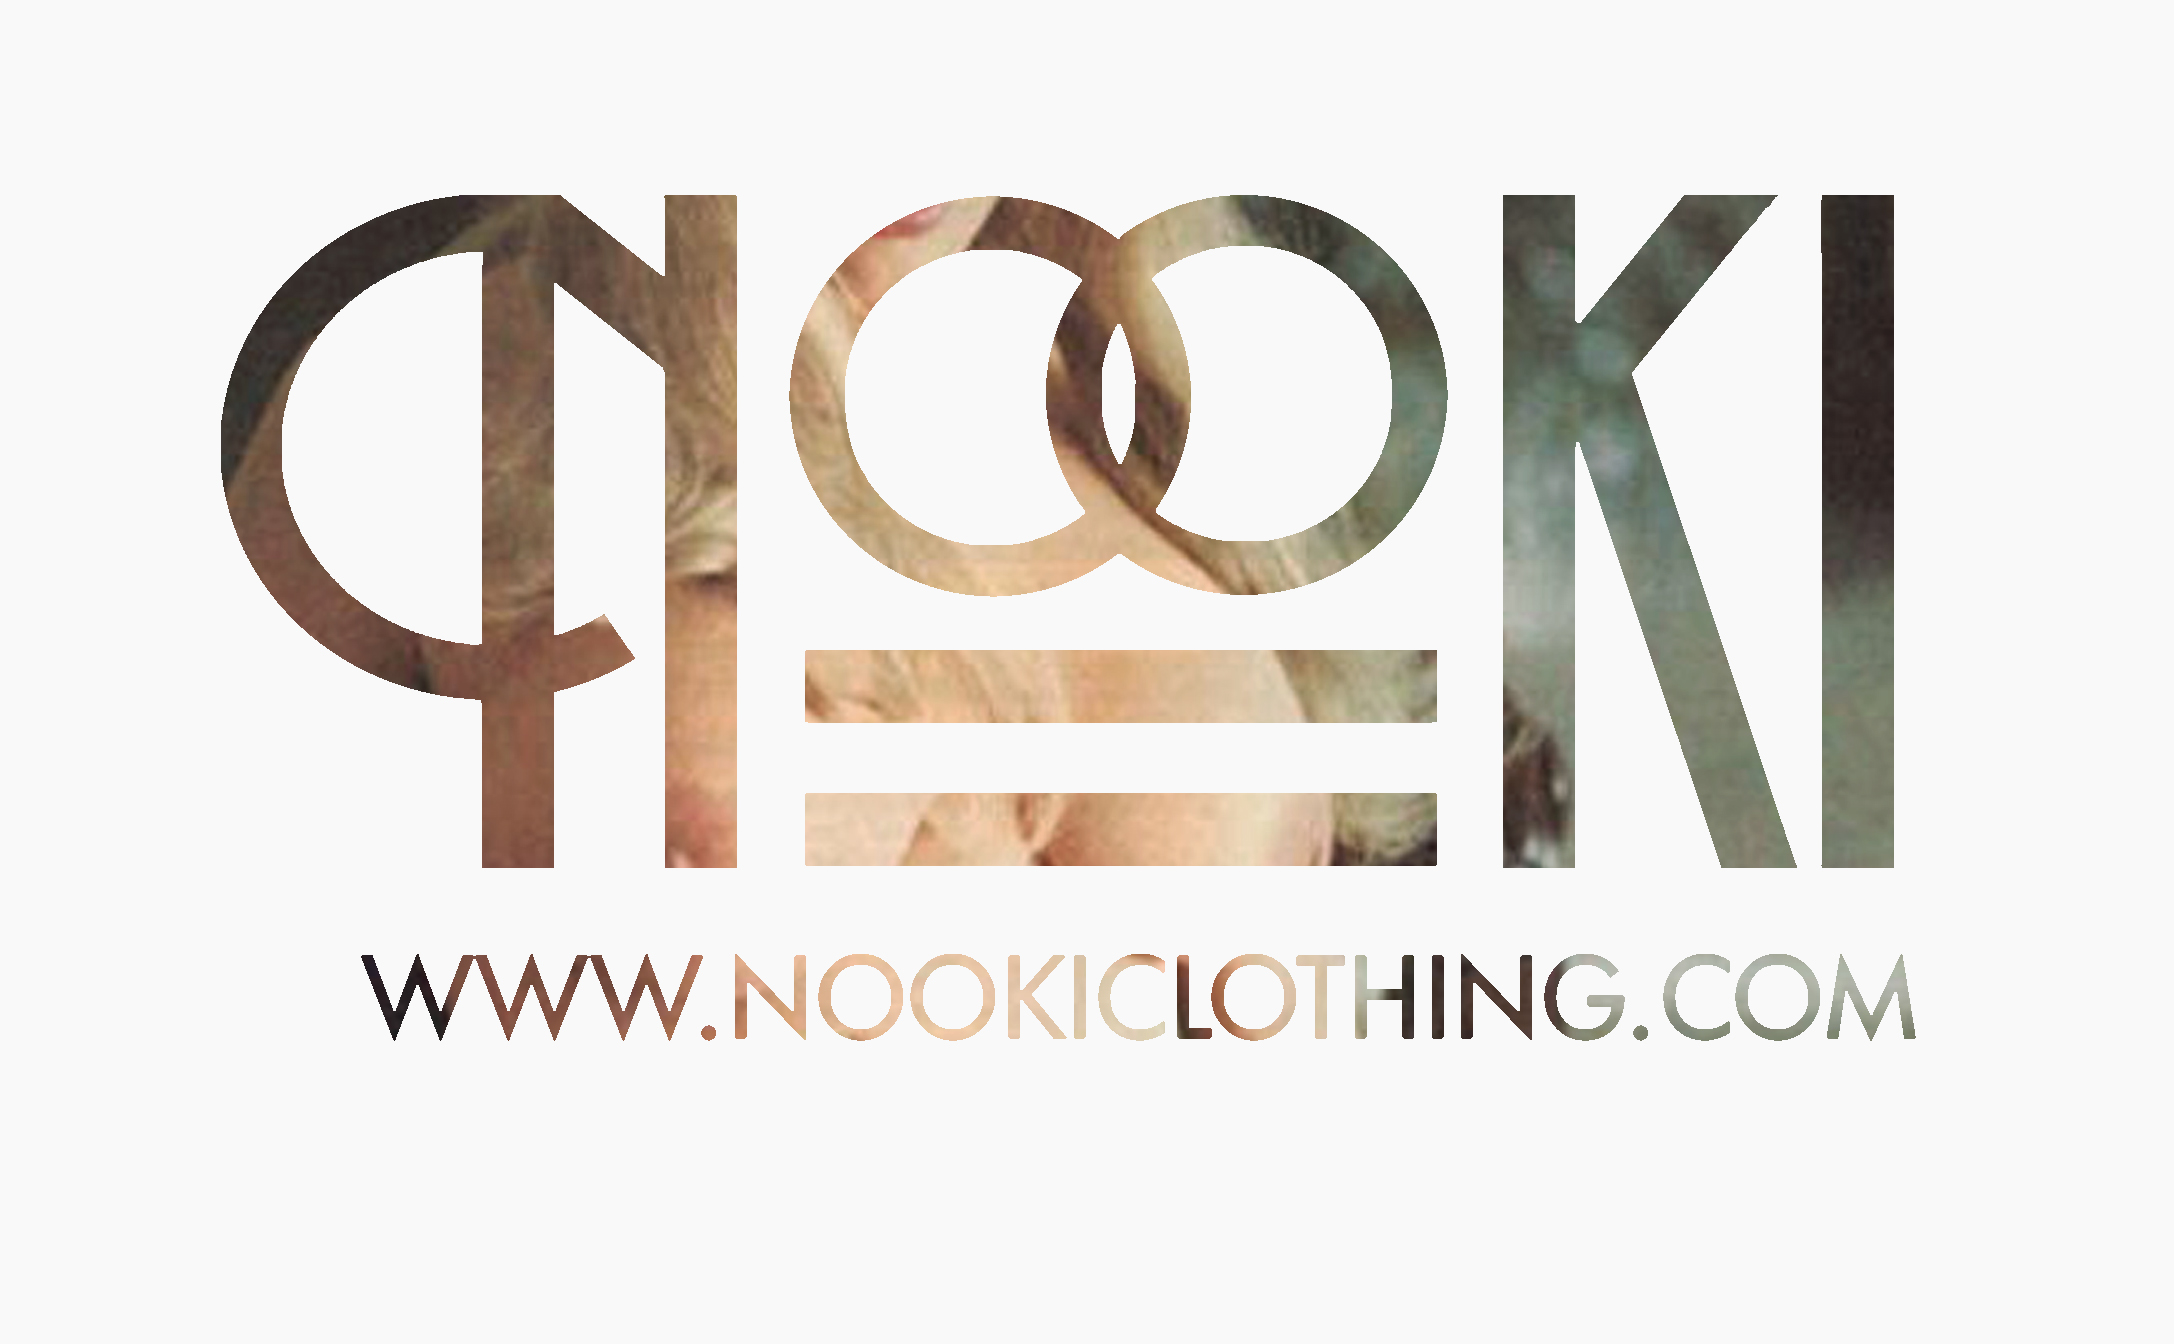 Nooki Clothing